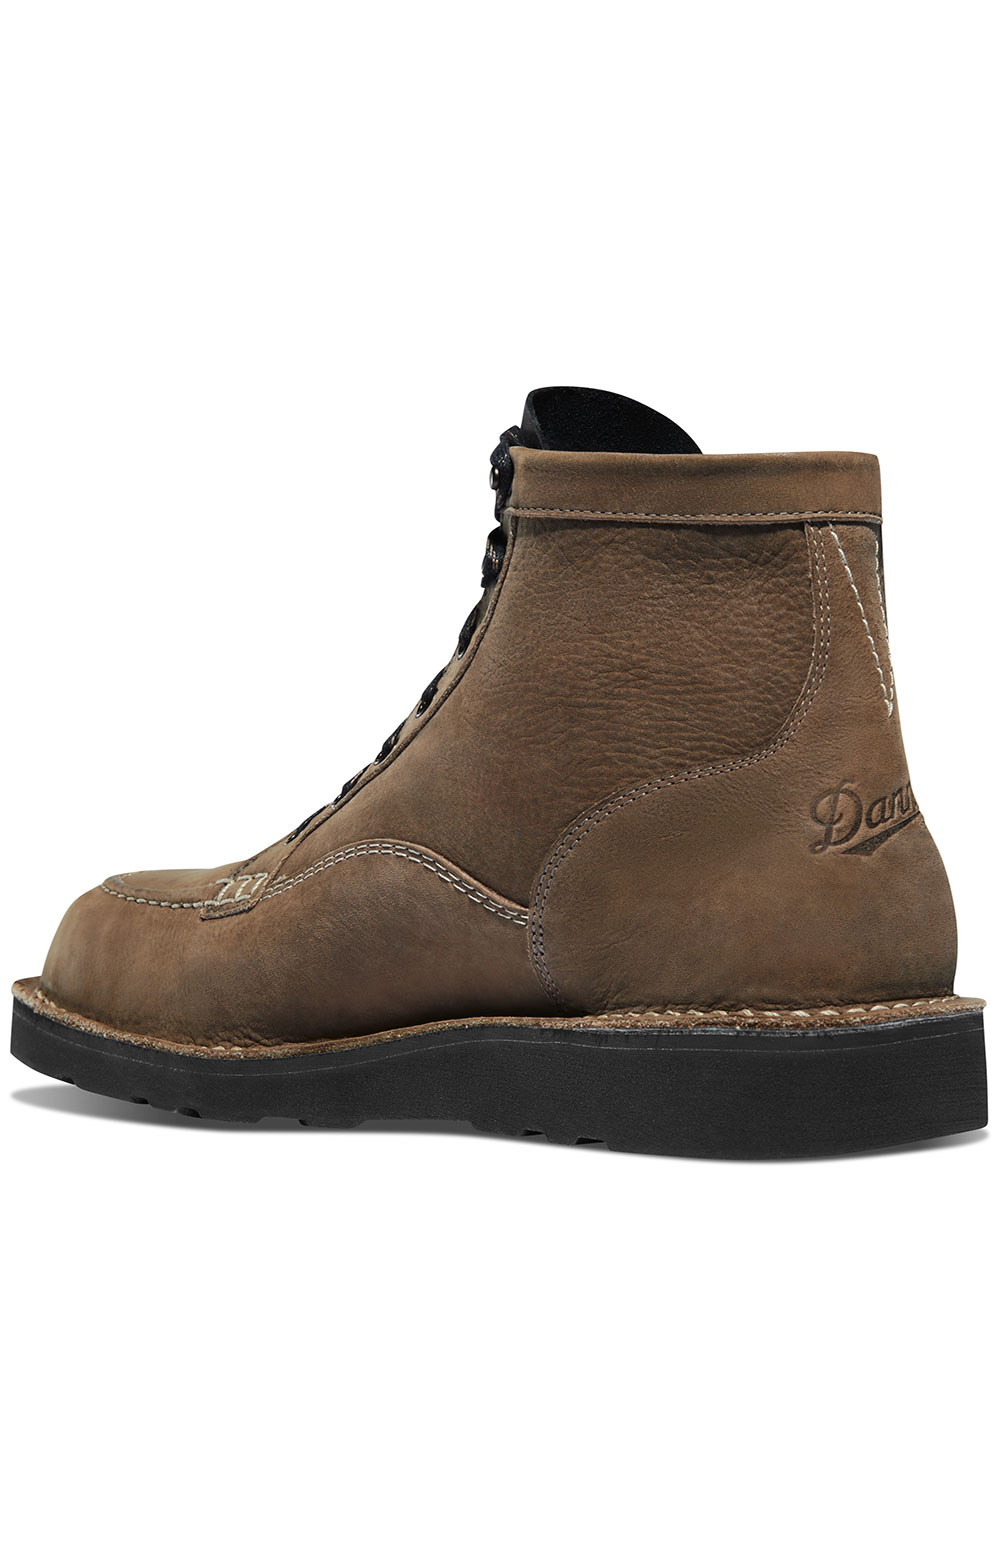 (31662) Bull Run Lux Boots - Vintage Sterling 2